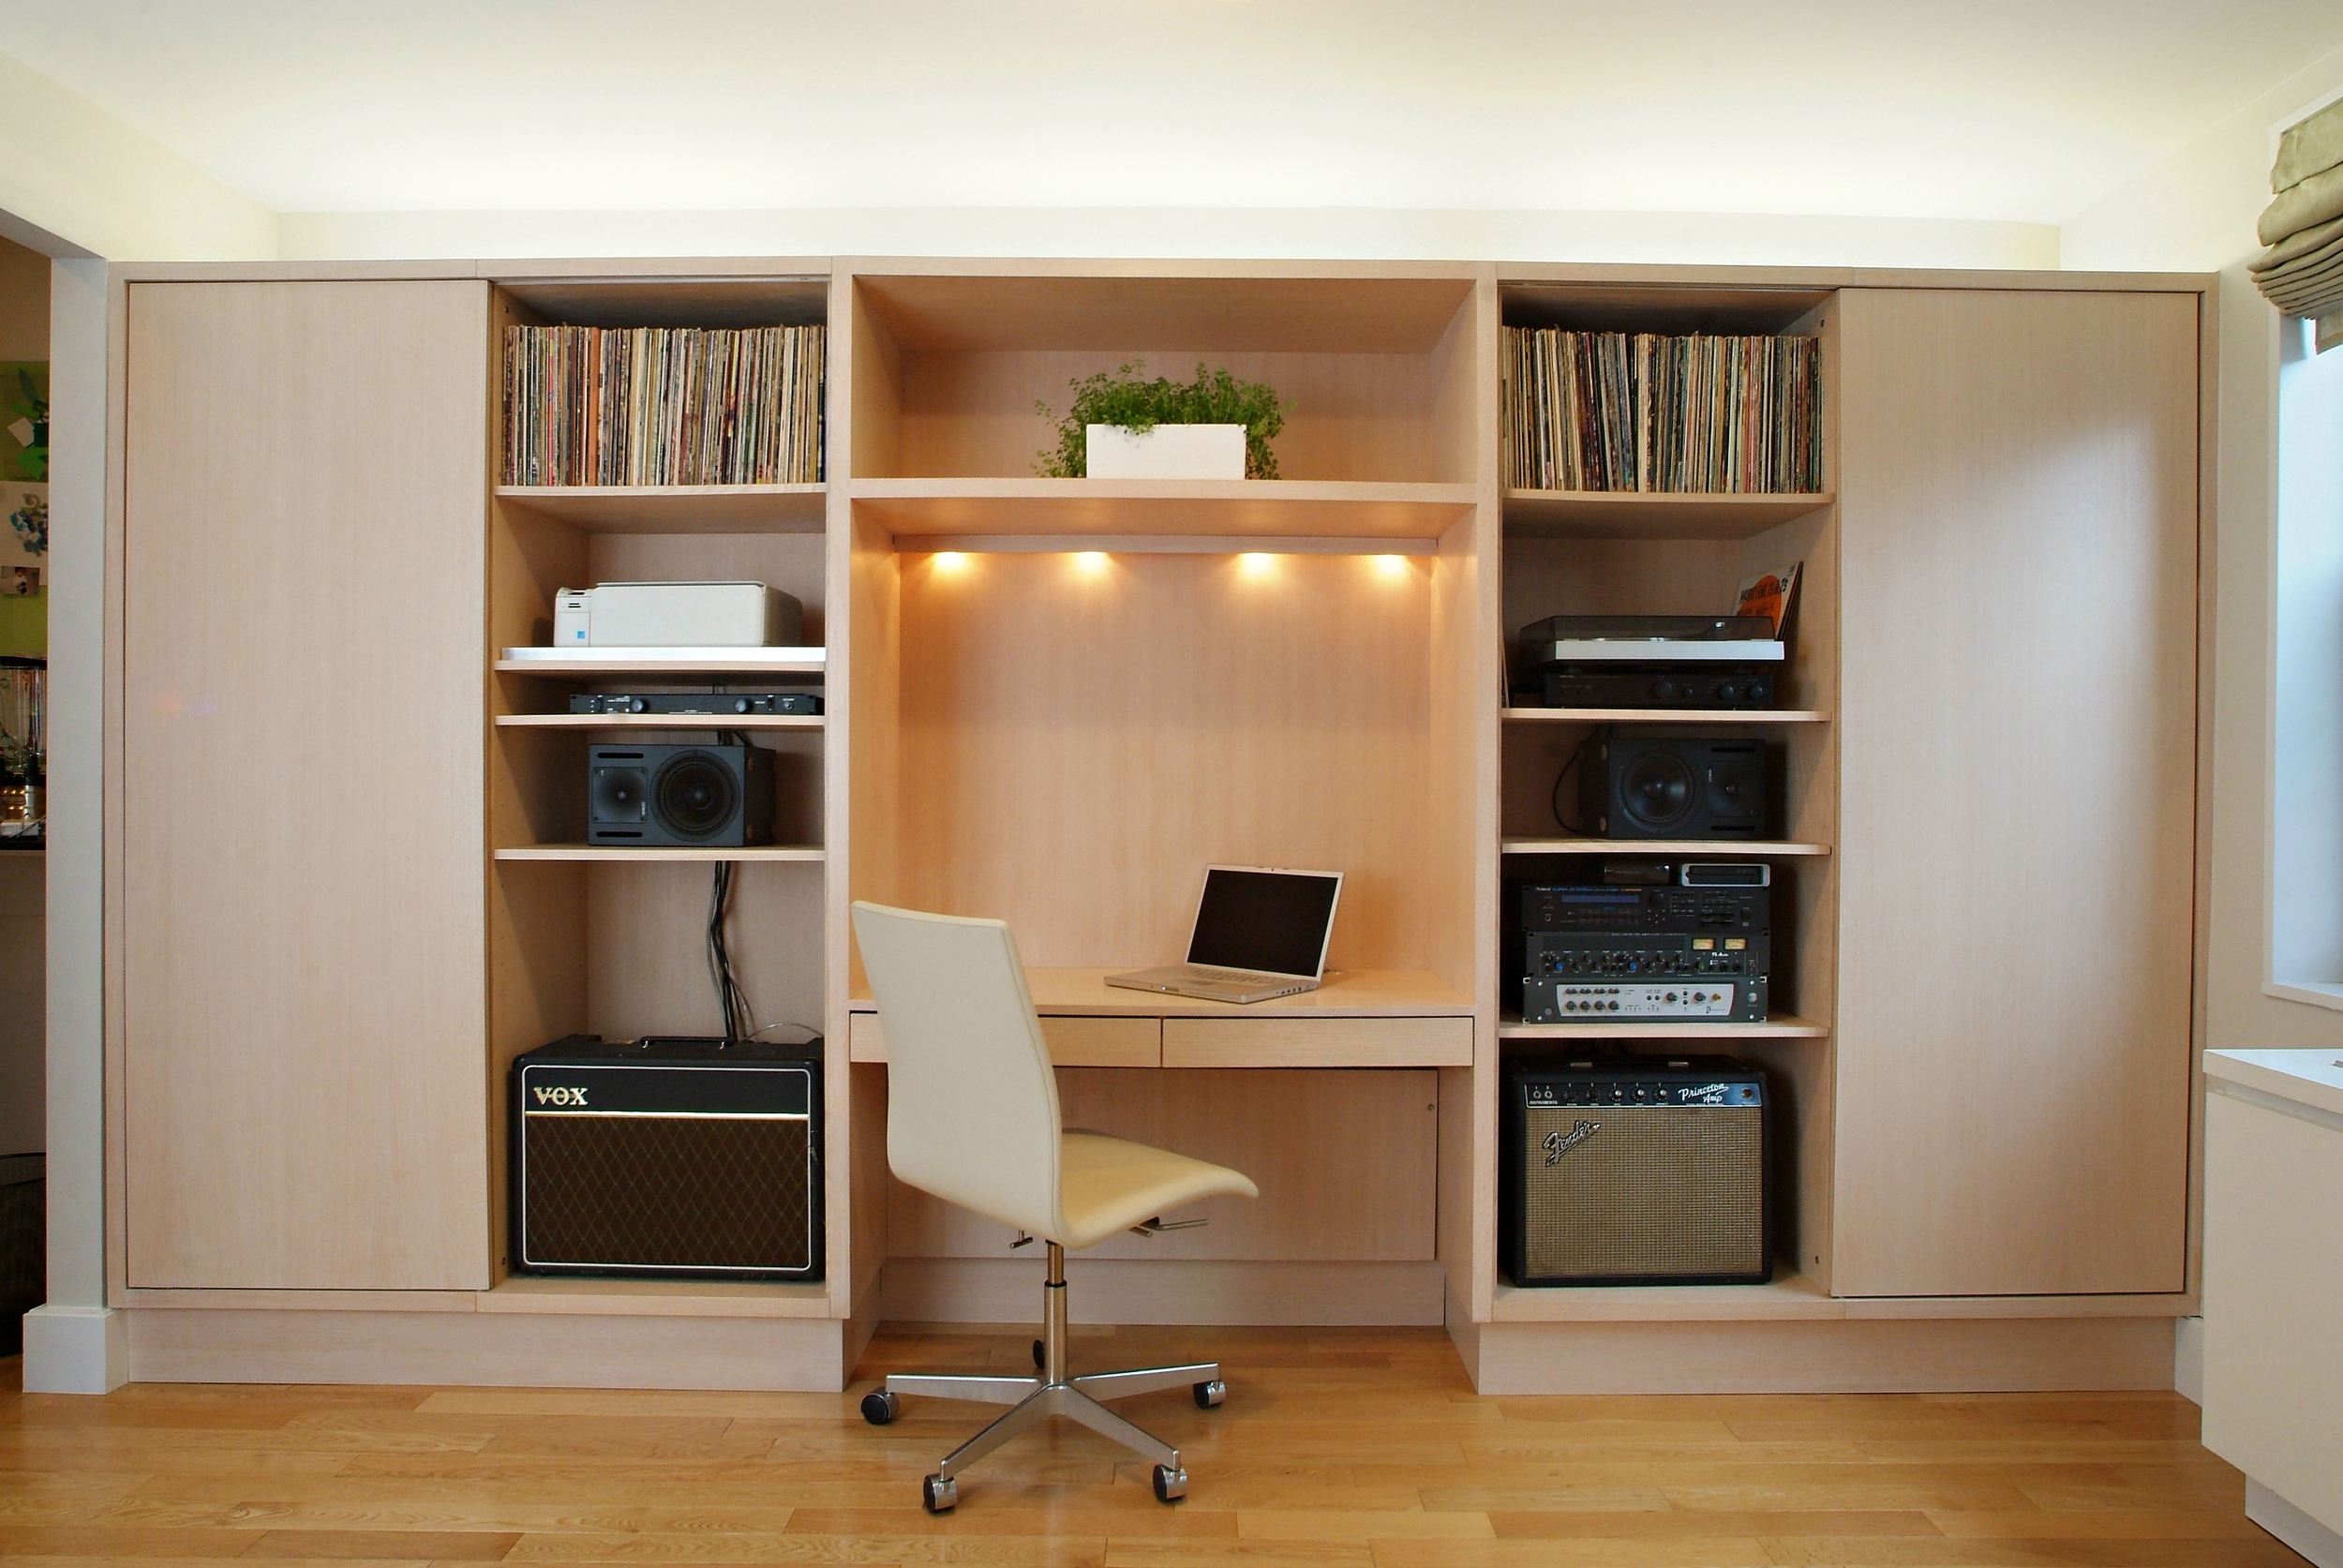 Husband's passion is music. The cabinetry design reveals his musical collection.